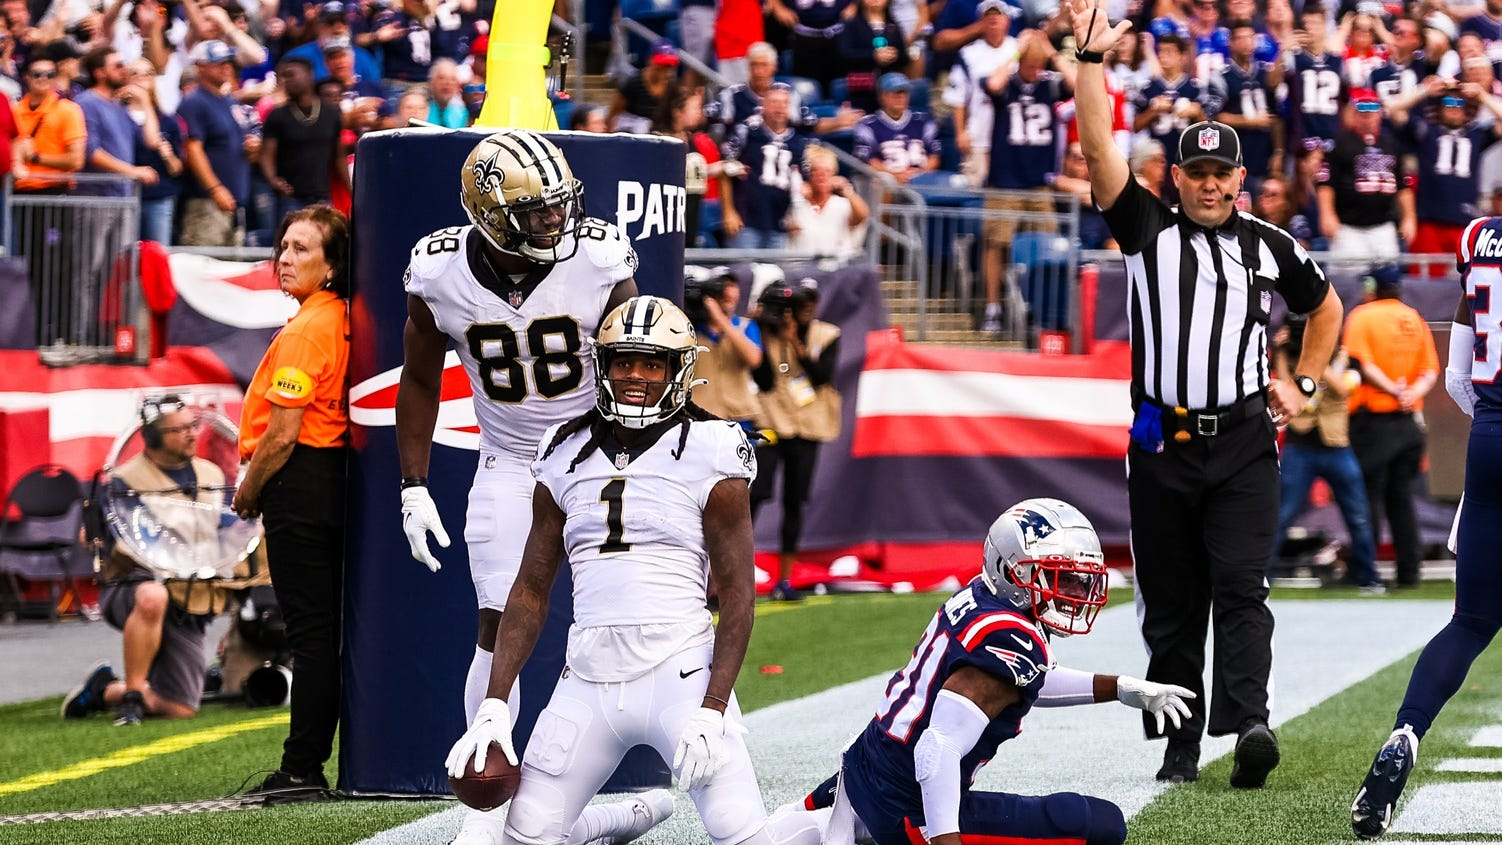 Saints' first priority: Beat the Patriots. Then it was 'we're going home!'